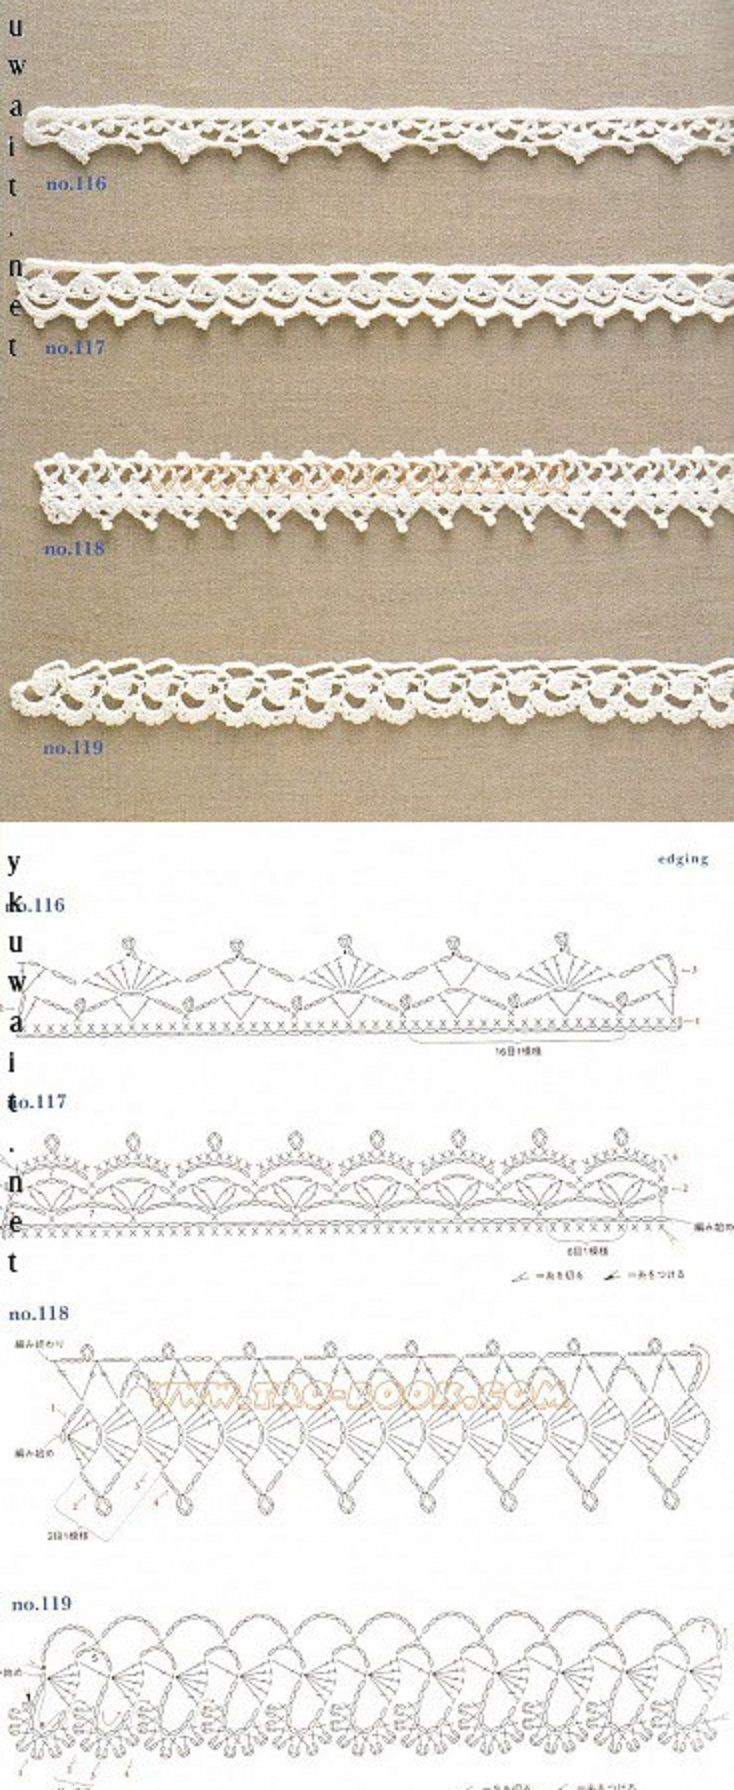 #_Crochet Edgings and diagrams.